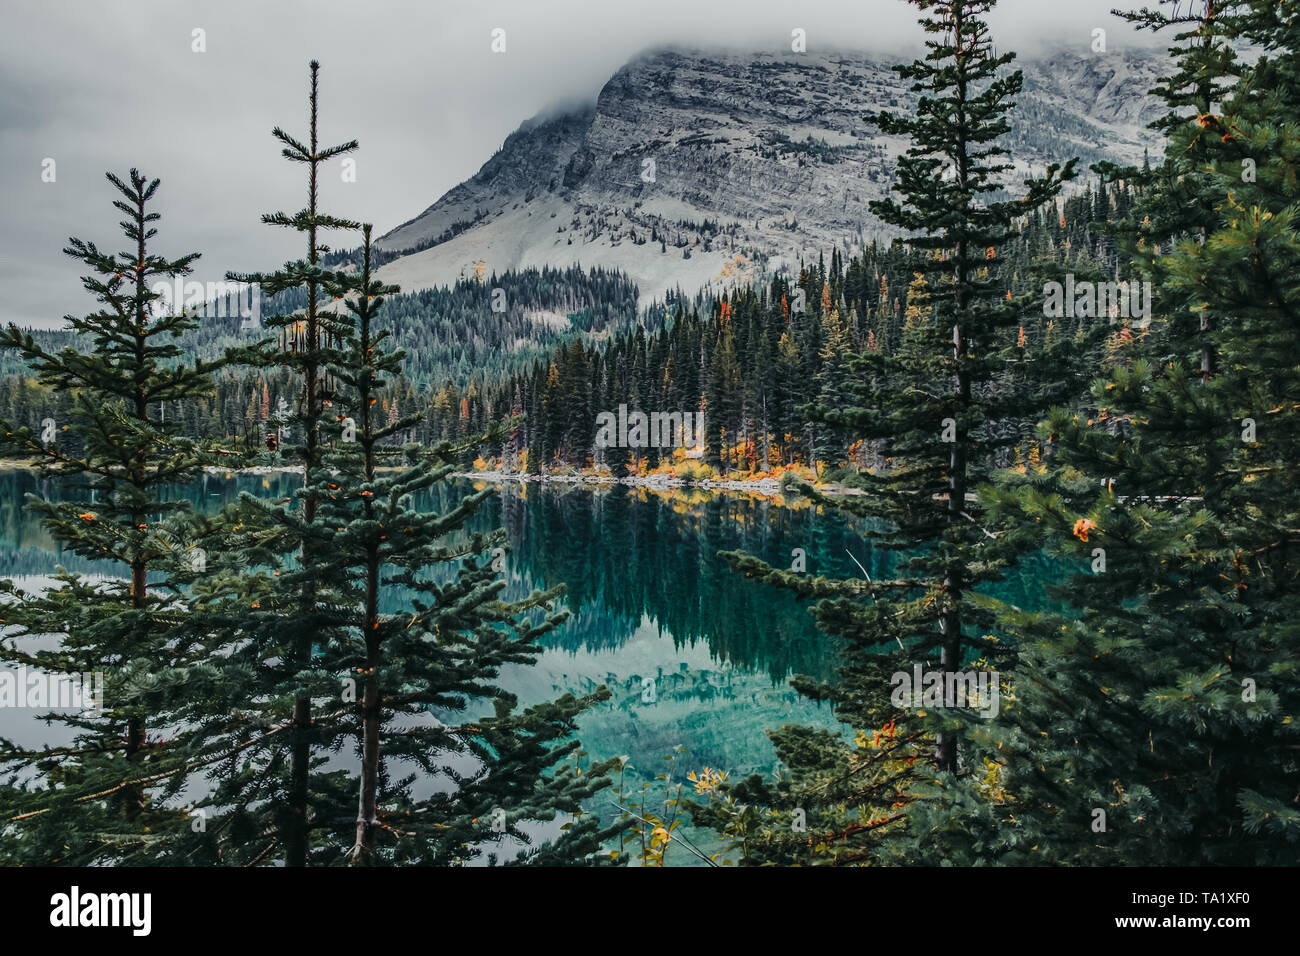 Reflections of pine trees off Swift Current Lake in Glacier National Park, Montana, USA in the fall - Stock Image